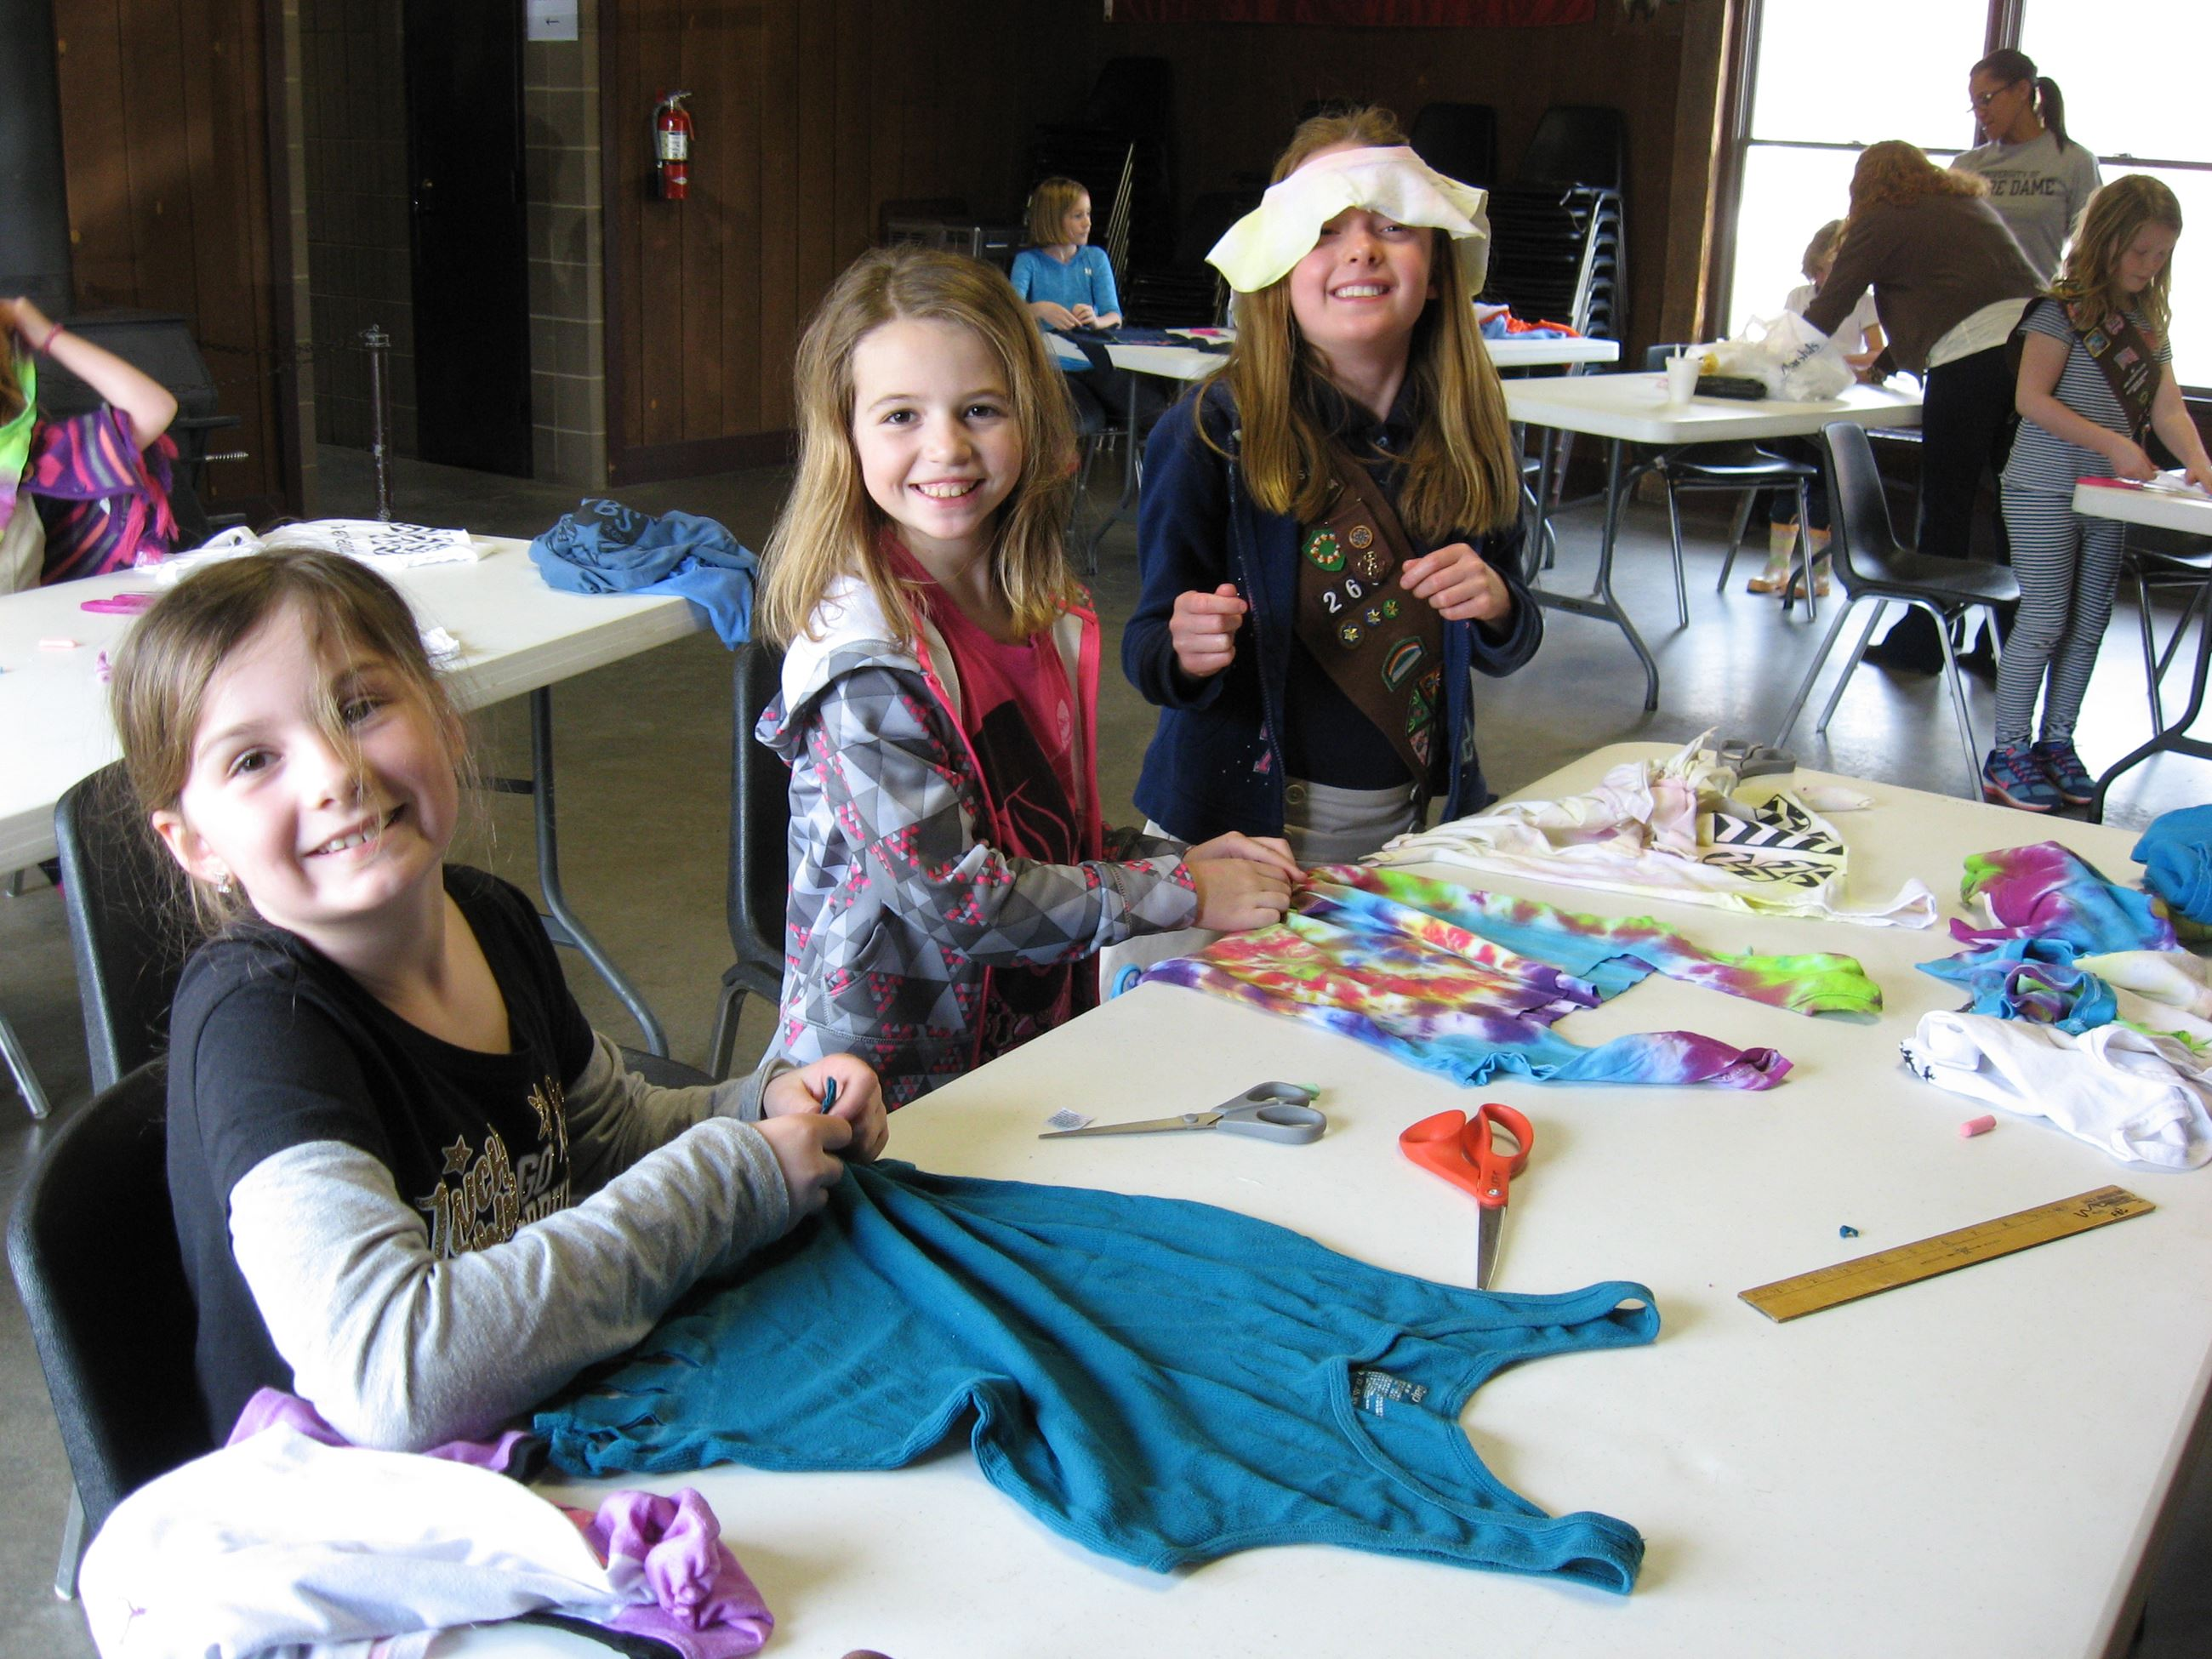 Children create new items from old Ts